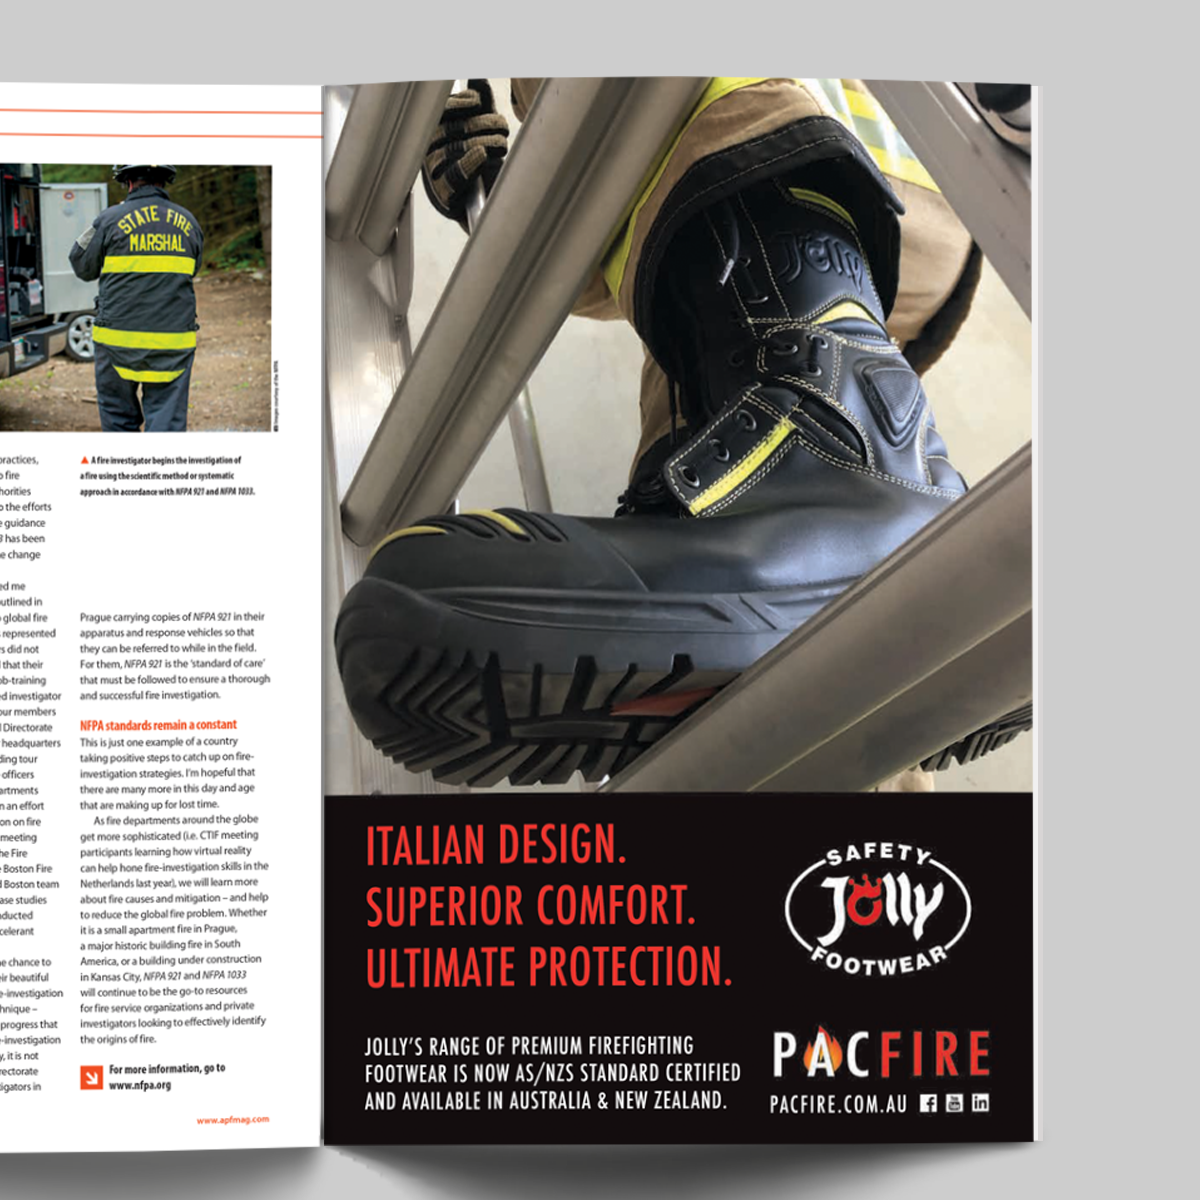 Introducing the Pac Fire Jolly Boots Range